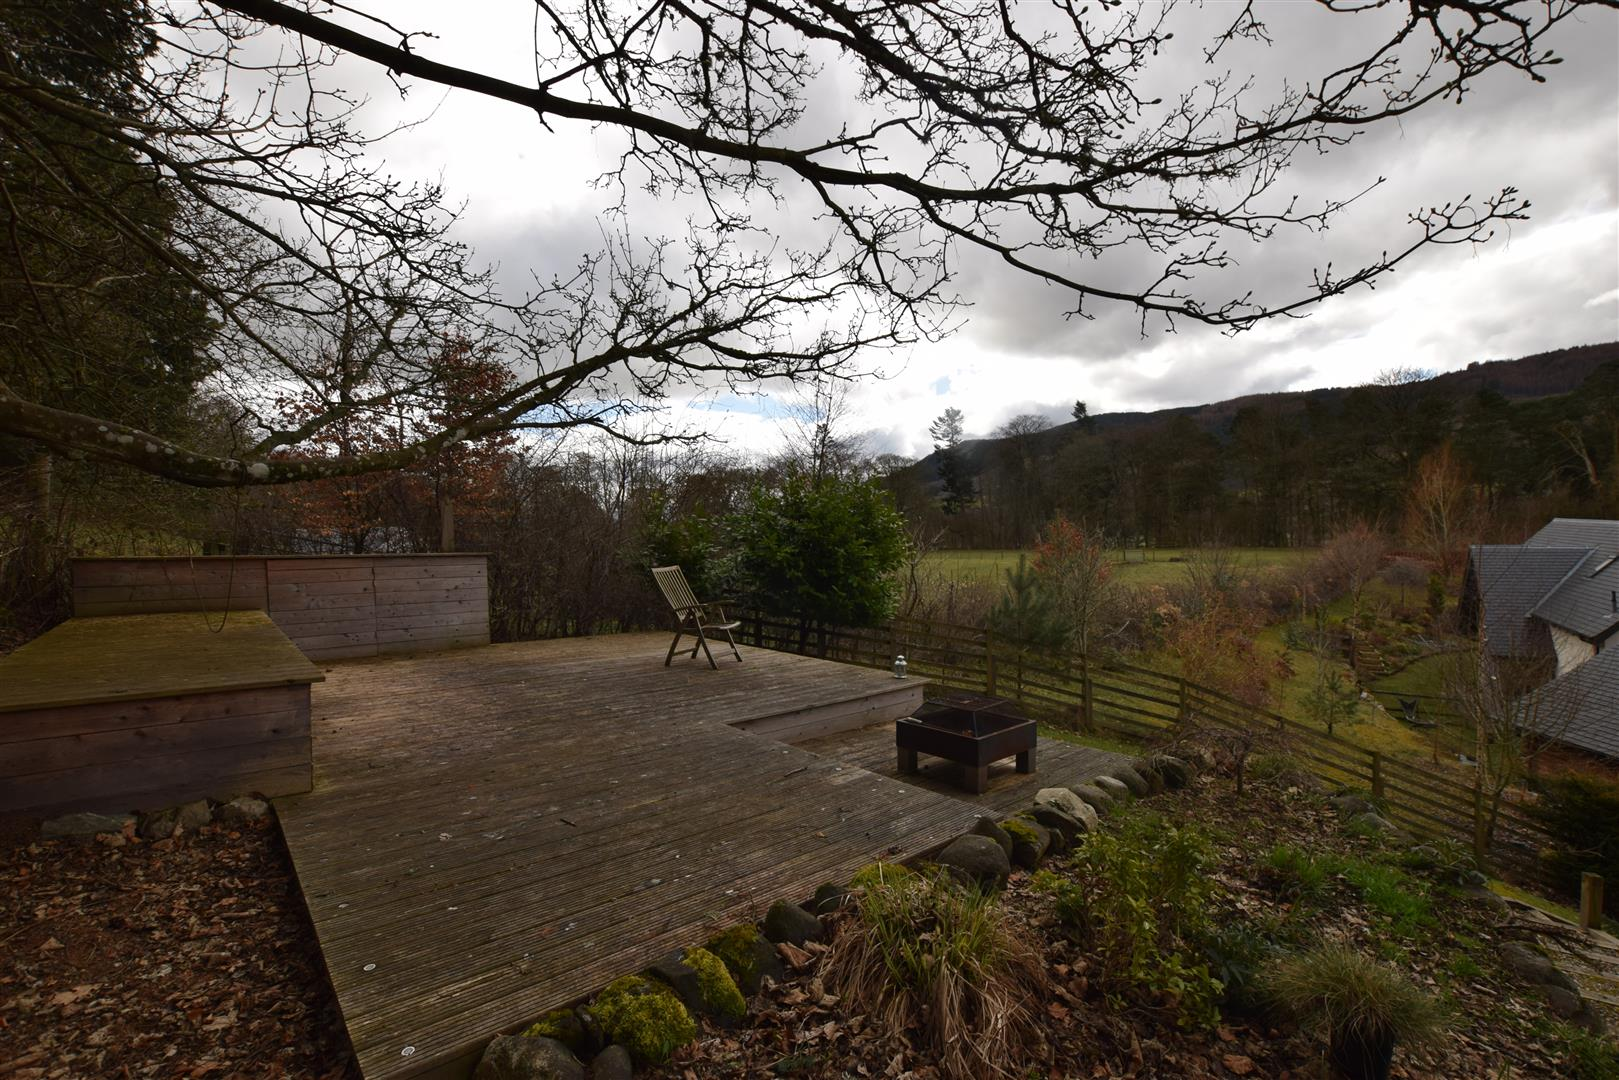 Croftcroy, Croftinloan, Pitlochry, PH16 5TG, UK